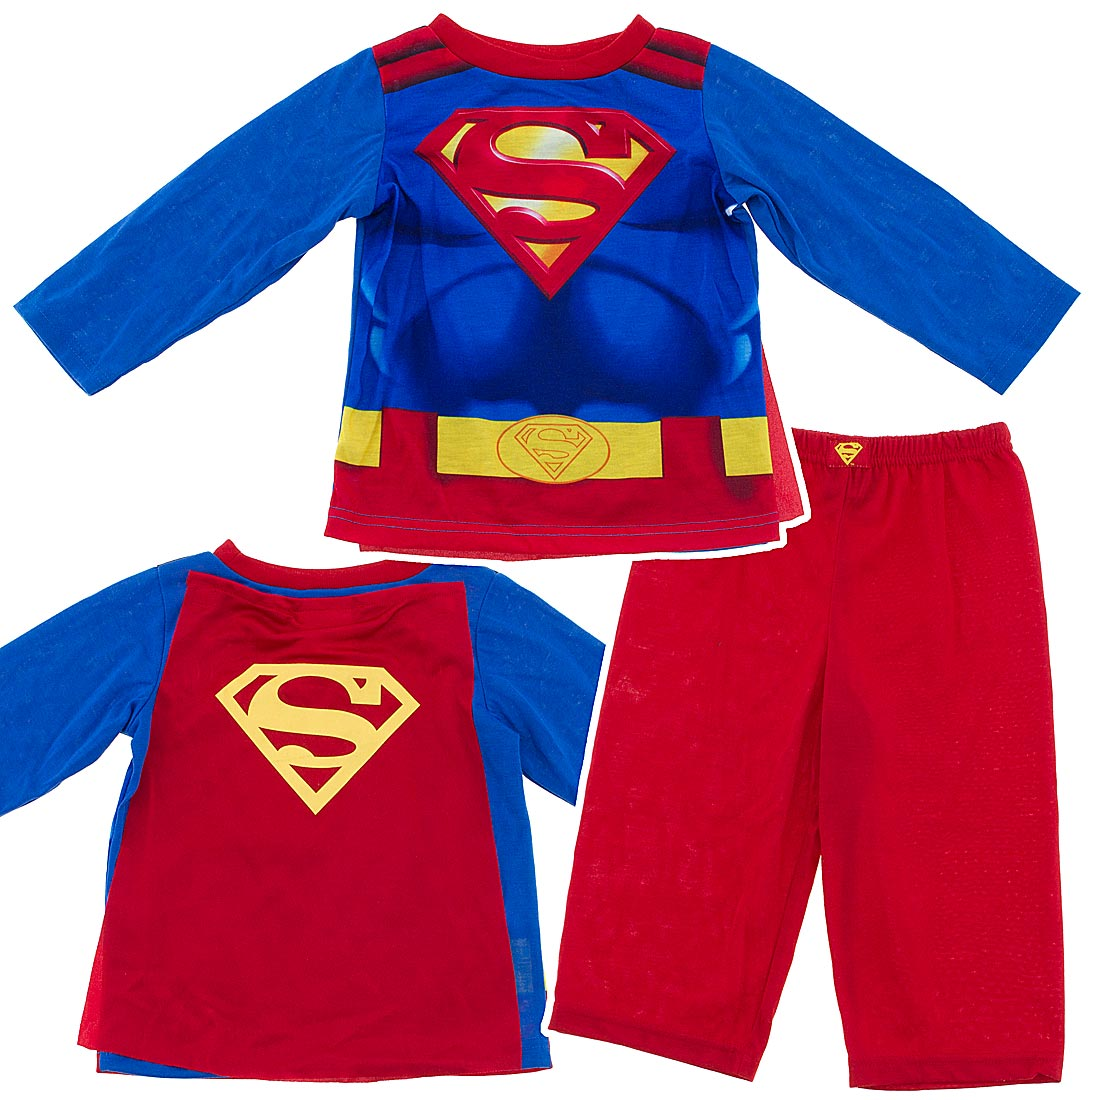 Superman Pajamas For Toddlers With Cape